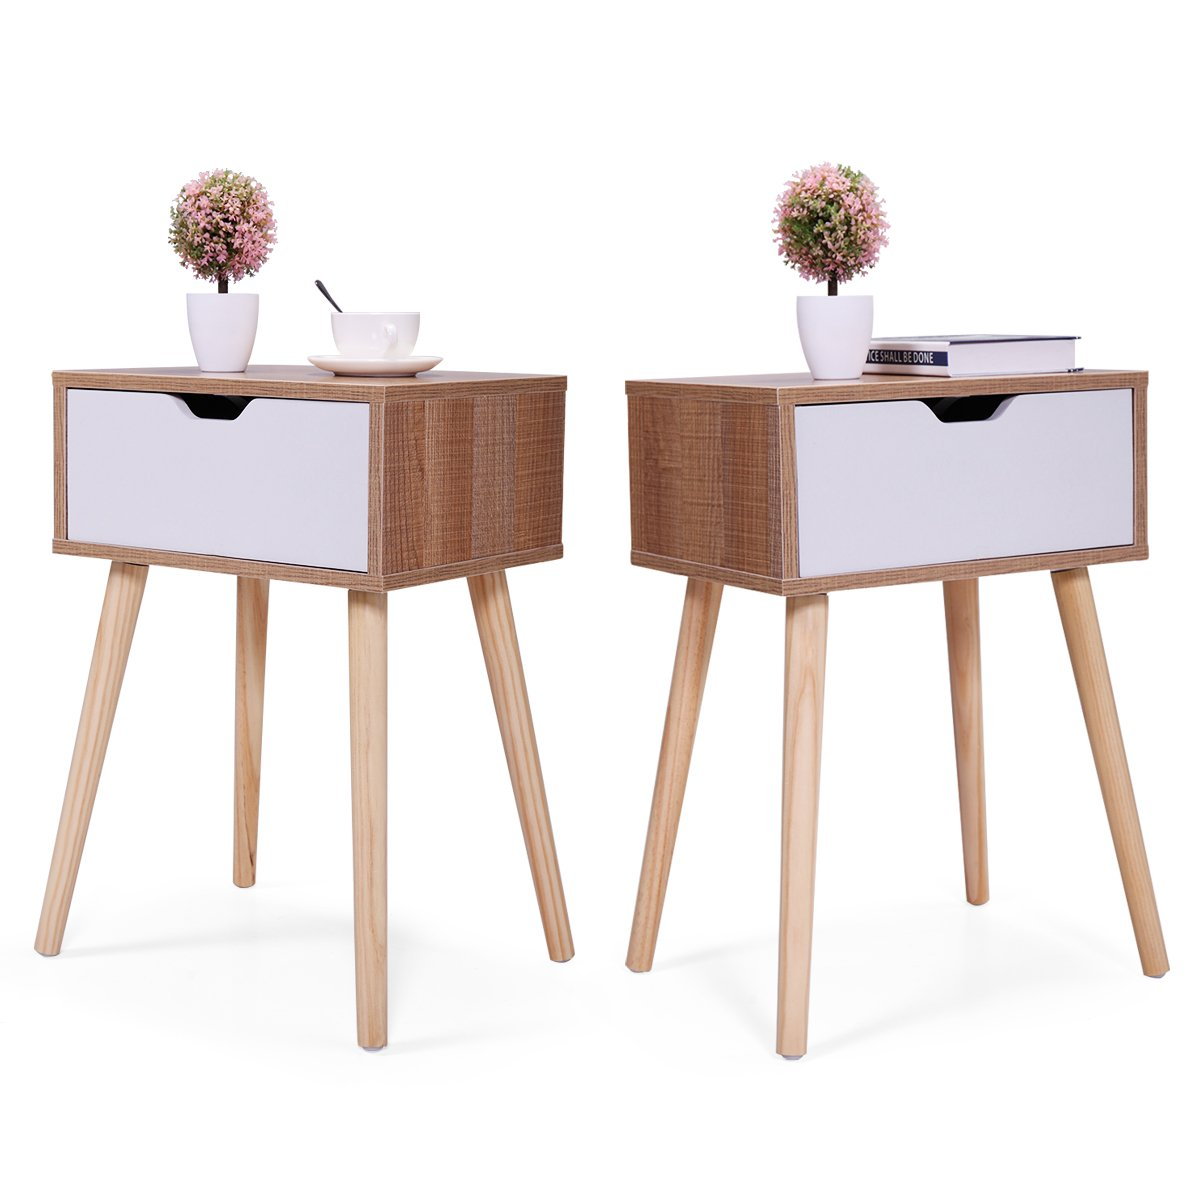 JAXPETY Set of 2 Bedside Table Solid Wood Legs Nightstand with White Storage Drawer (Brown) by JAXPETY